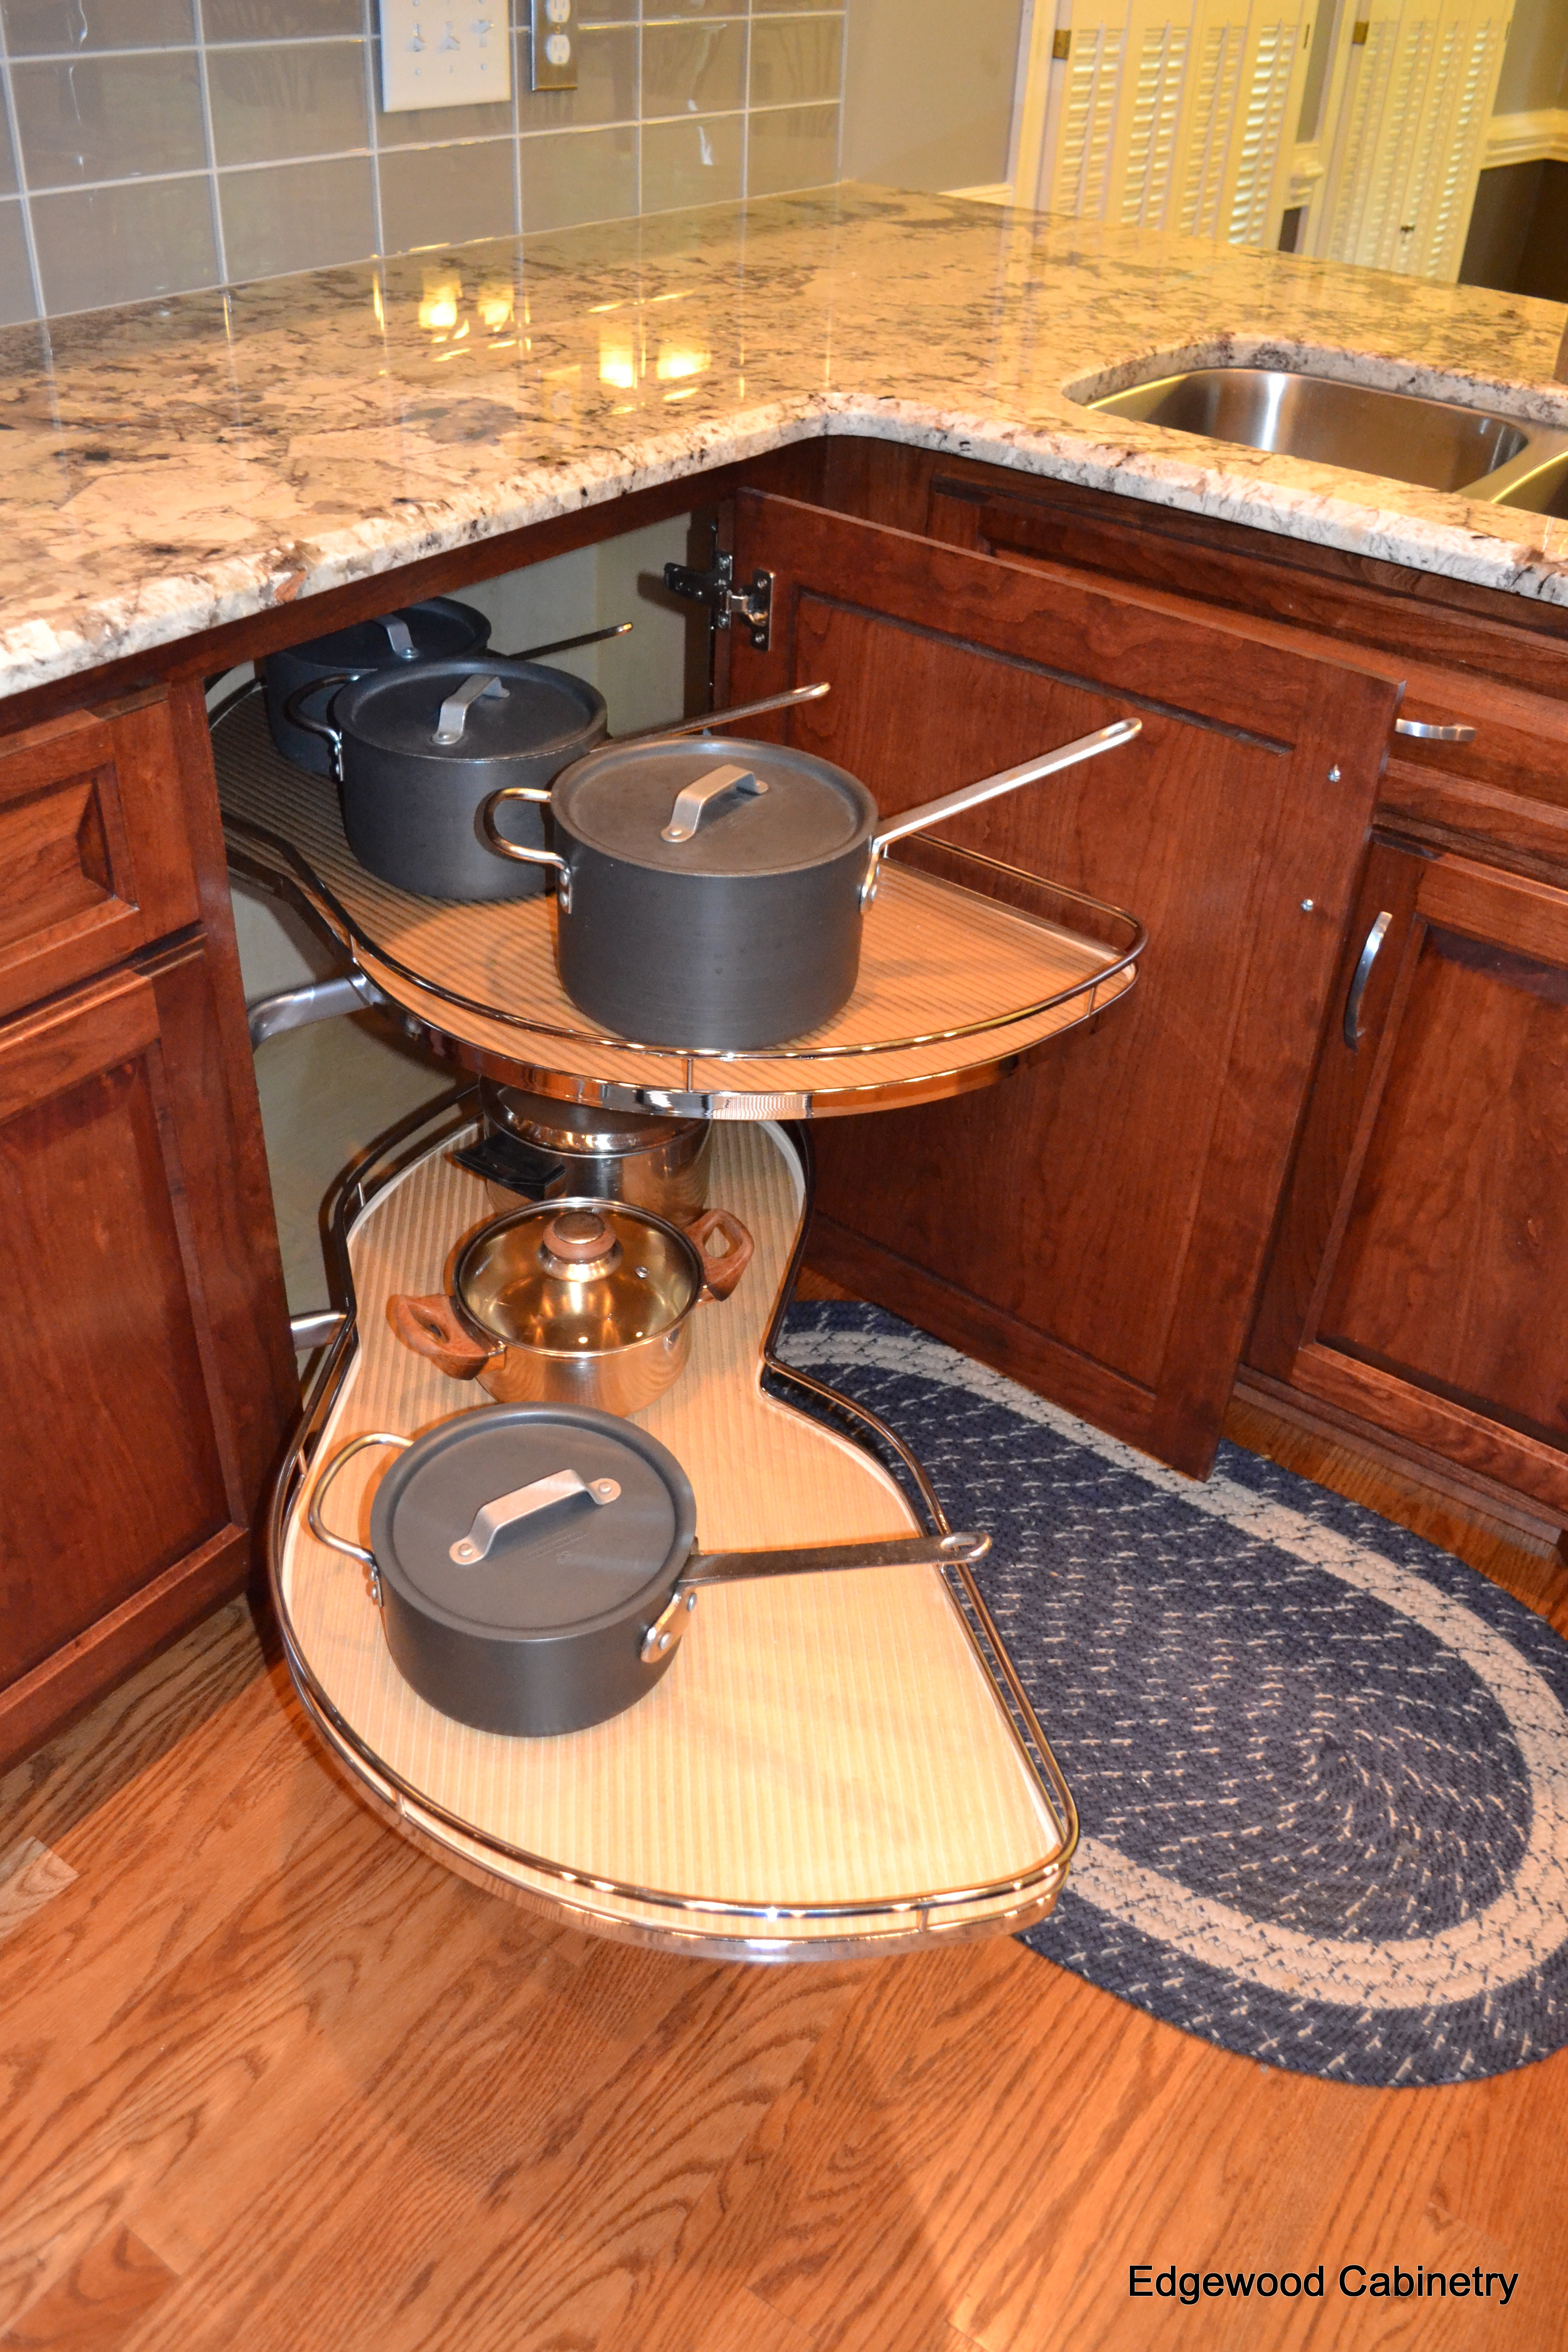 Corner Cabinet Solutions  Edgewood Cabinetry